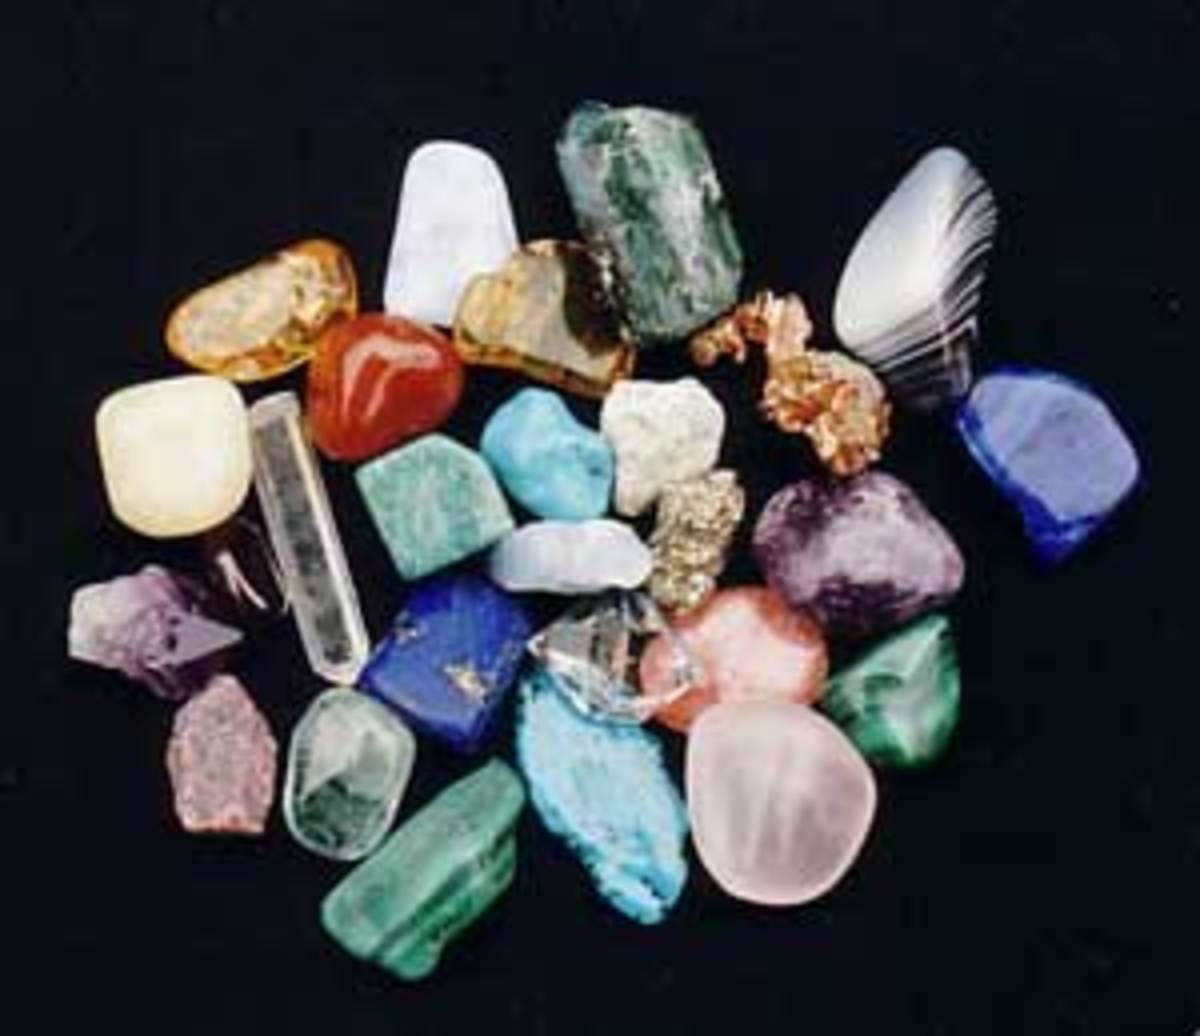 Crystals can be used to ease the traits of autism and Asperger's syndrome